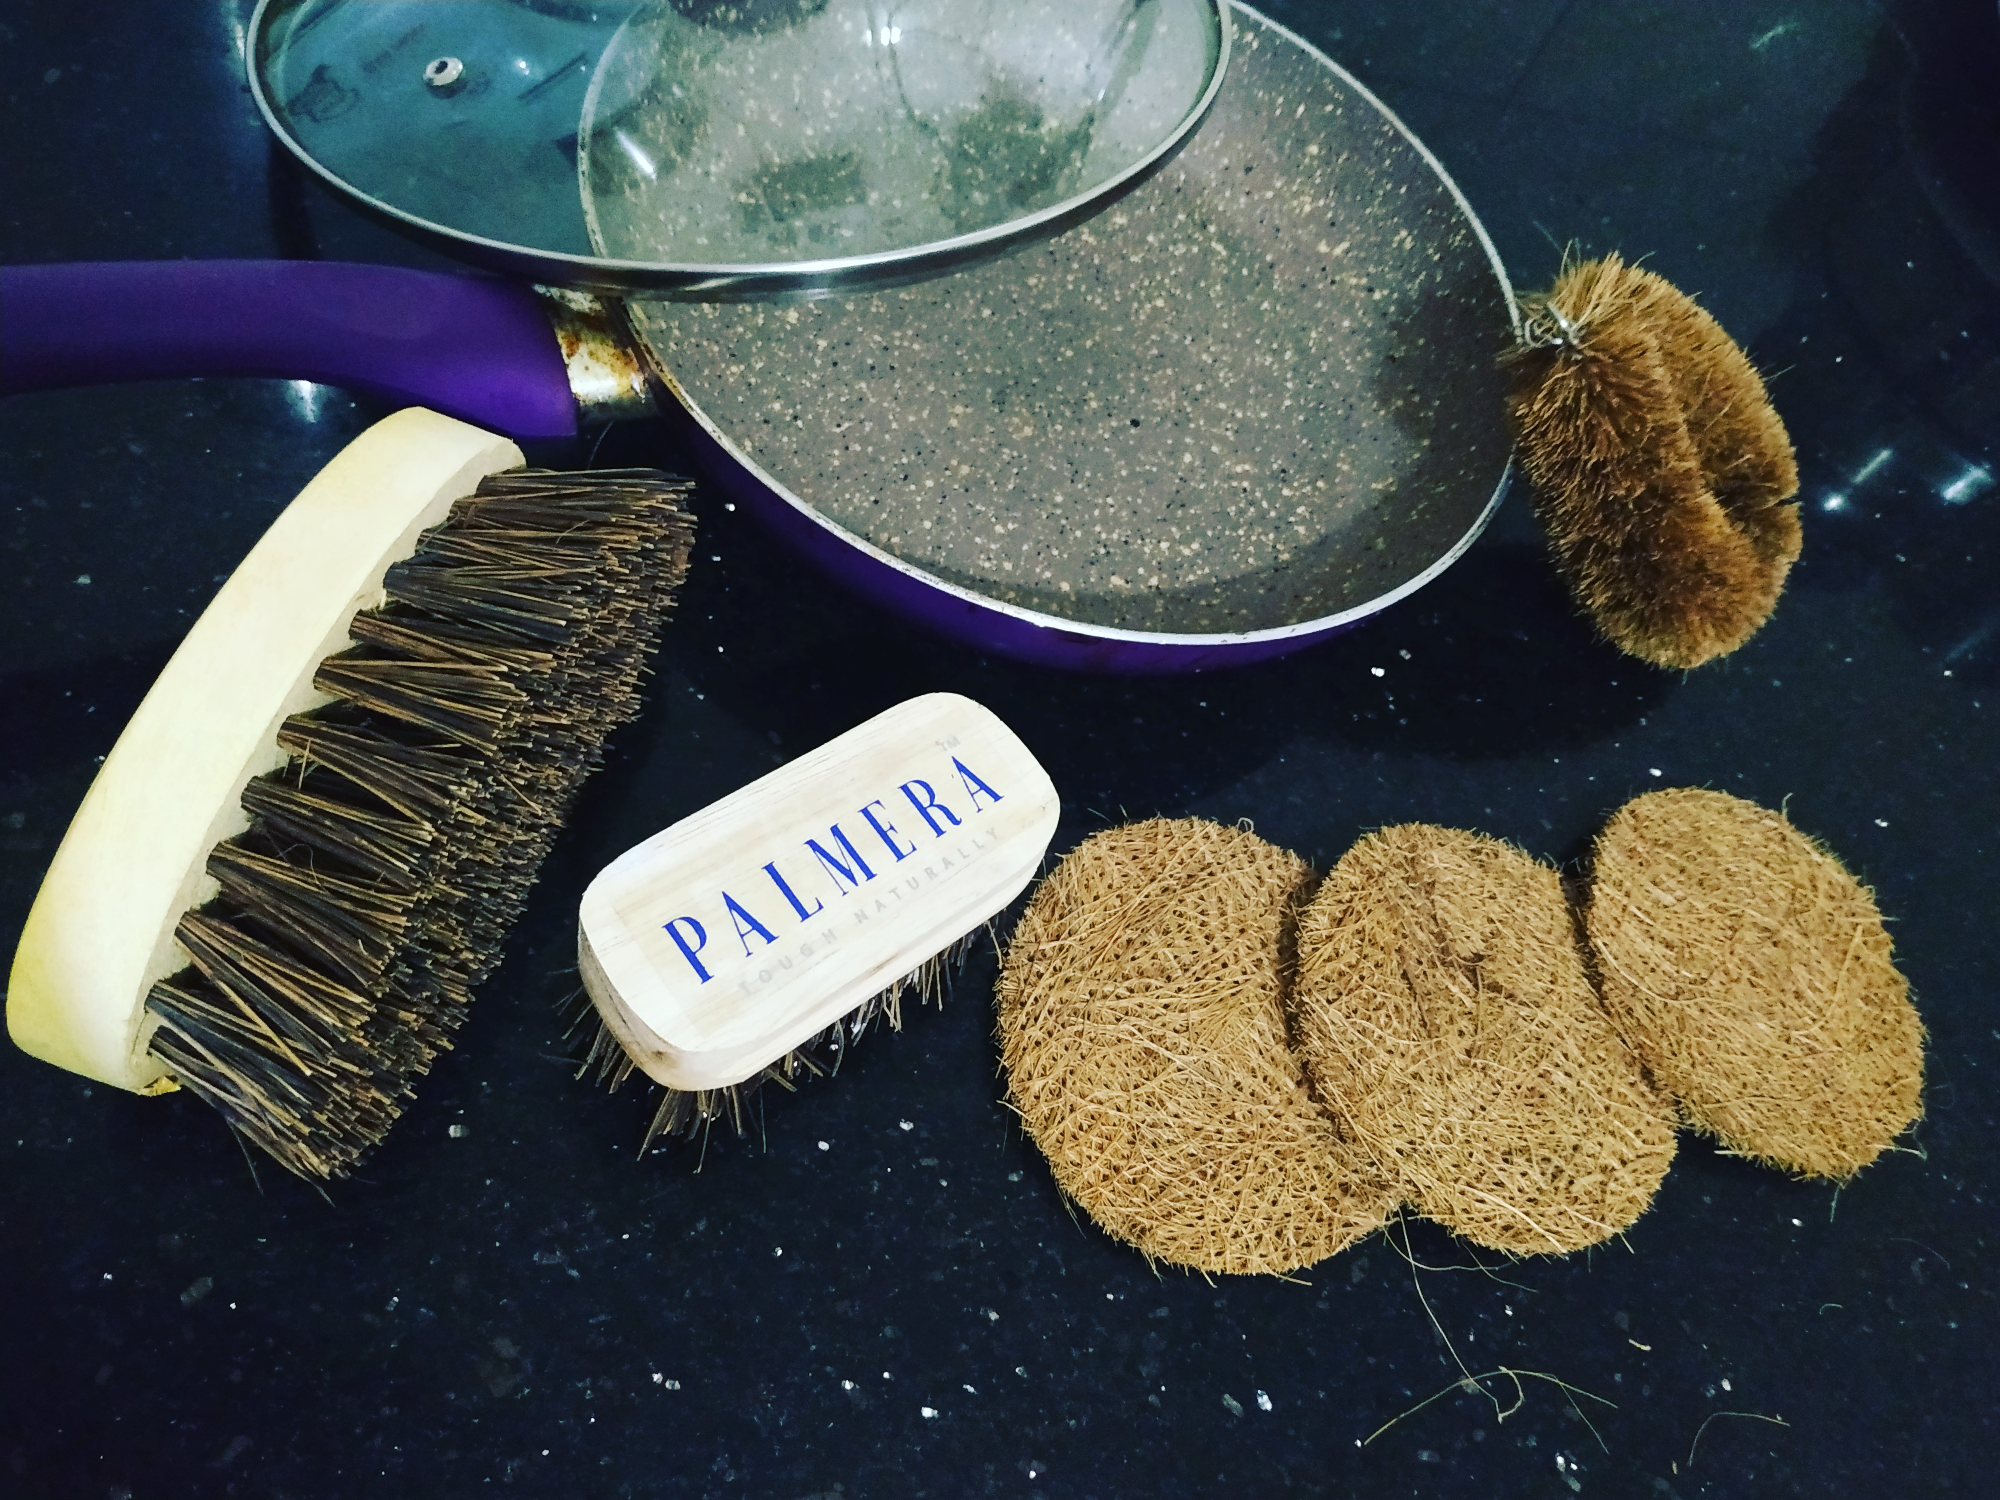 Ditch plastic scrubber and gift your mother Ecofriendly scrubber and brushes from Palmer's brushes....  image